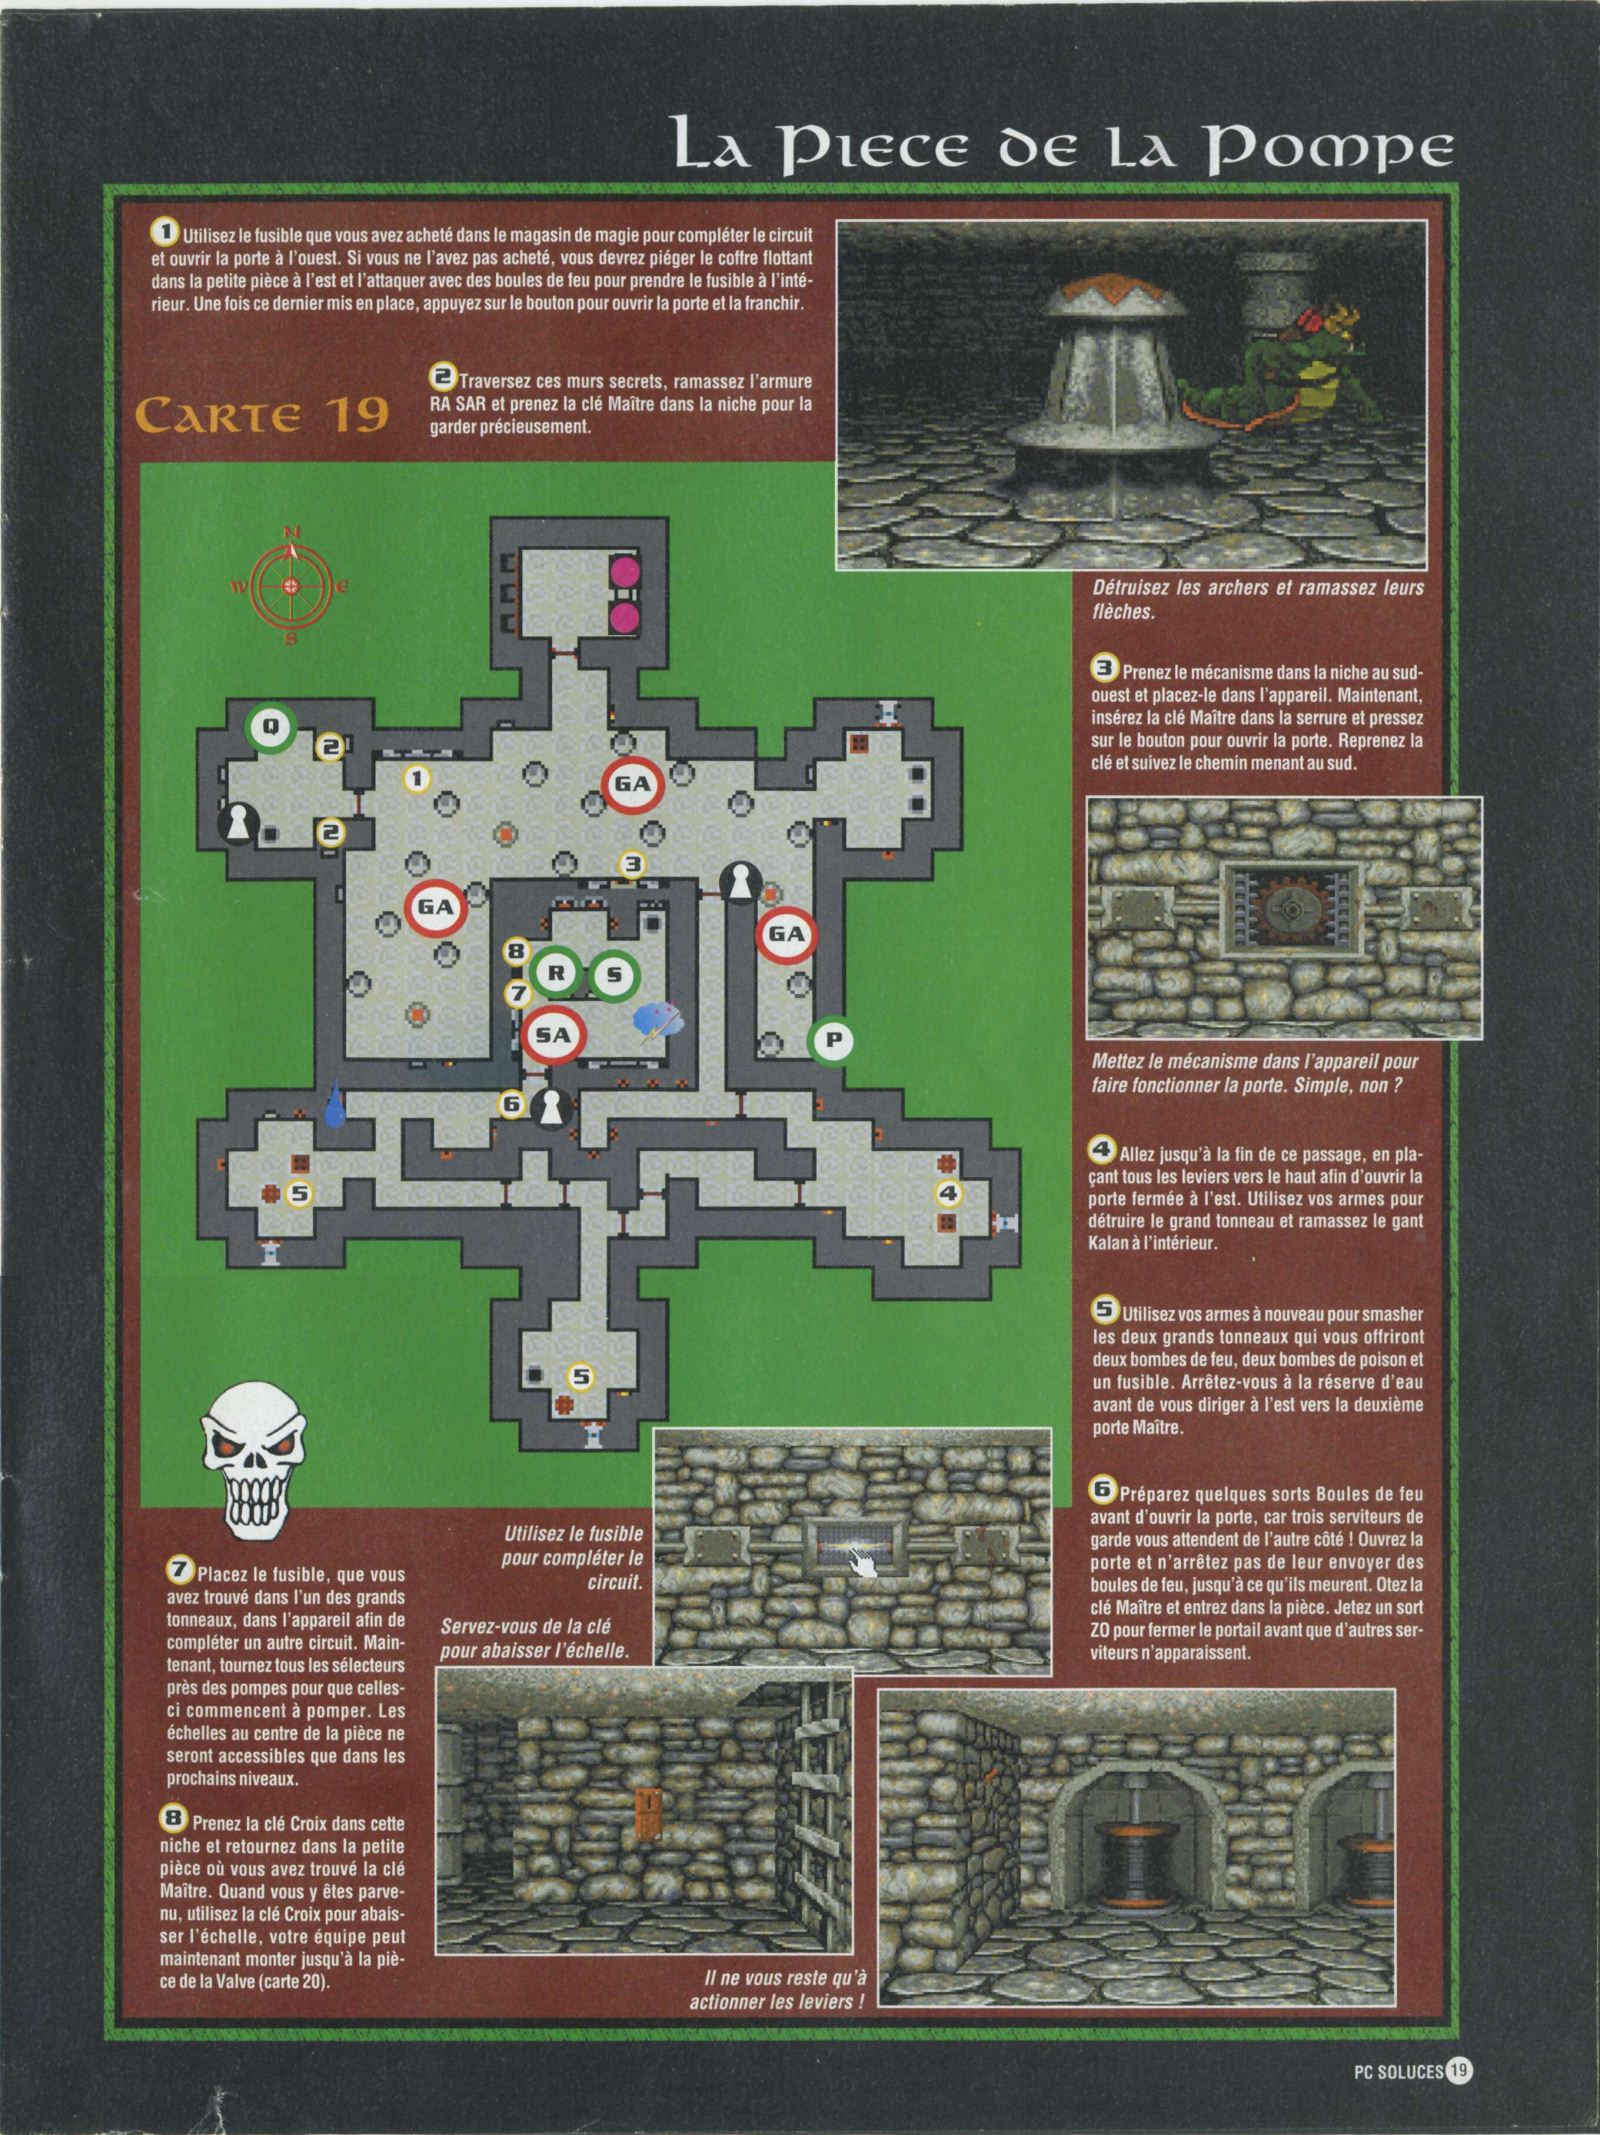 Dungeon Master II solution published in French magazine &amp;#039;PC Soluces&amp;#039;, Issue#1, February-March 1996, Page19